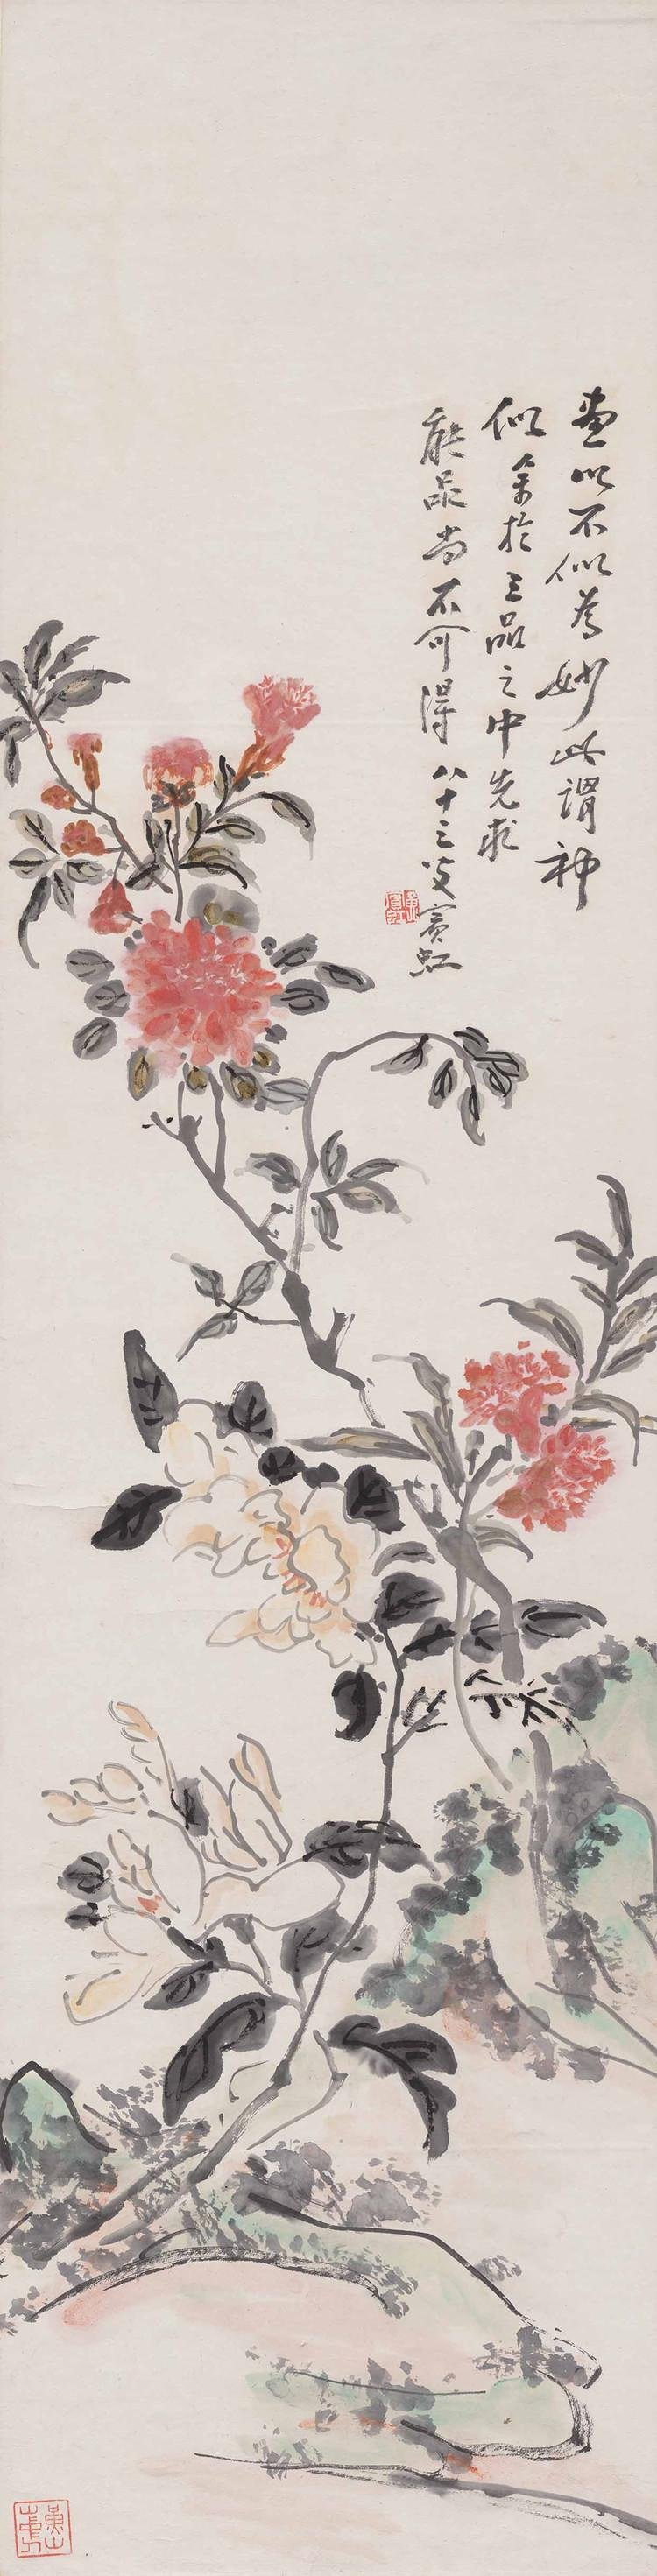 Chinese flower bird painting by Huang Bing Hong